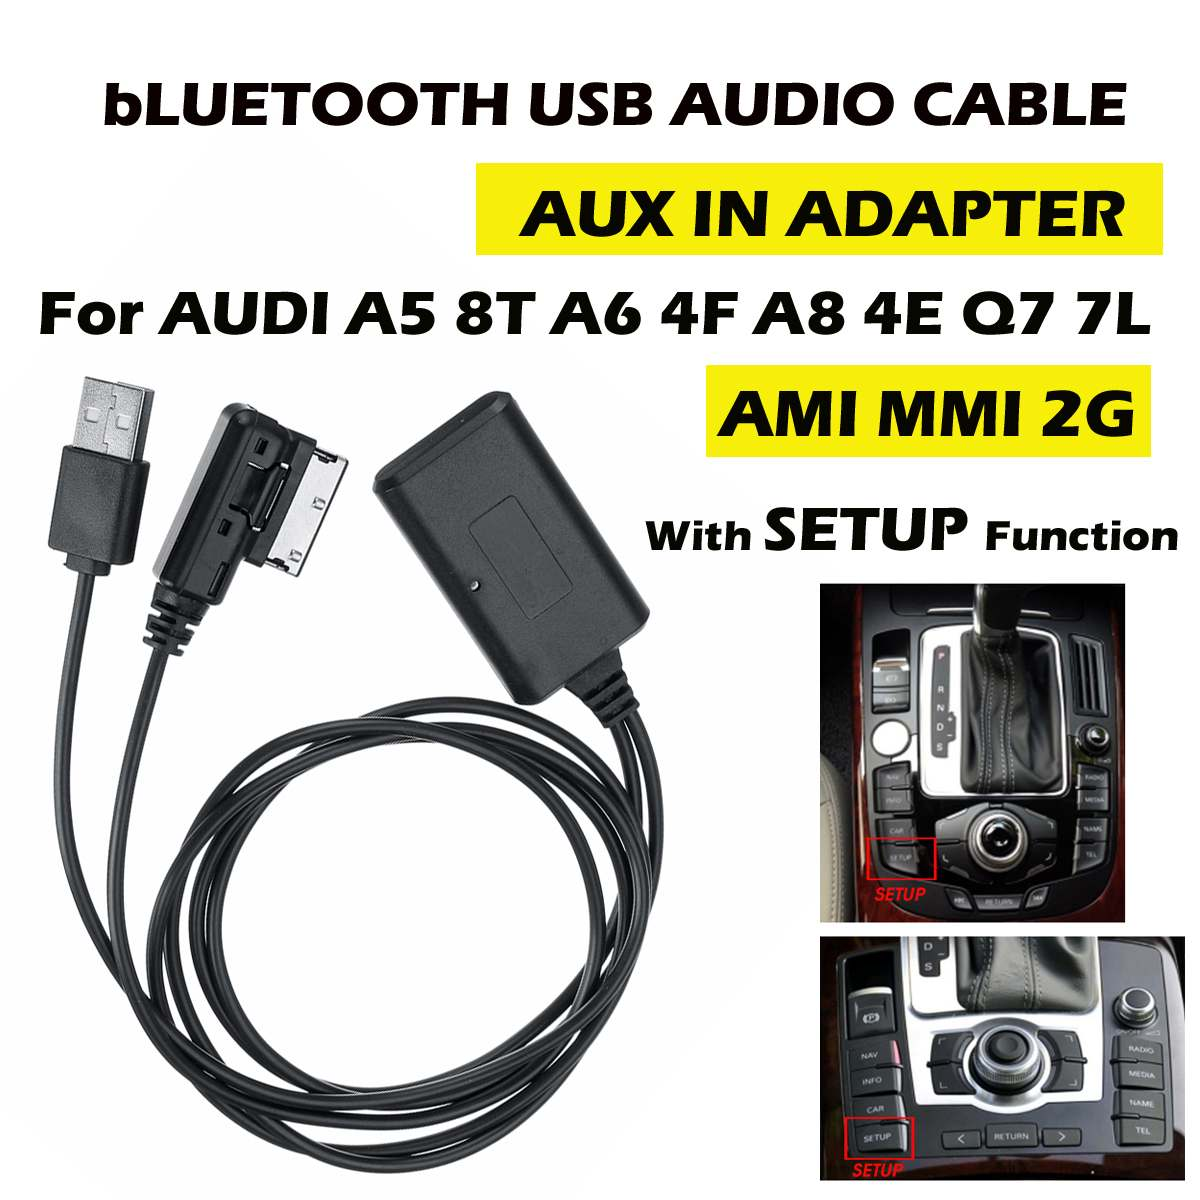 HIFI  Wireless 75cm Bluetooth Cable Audio Adapter Music Transfer AUX In For AUDI A5 8T A6 4F A8 4E Q7 7L AMI MMI 2G